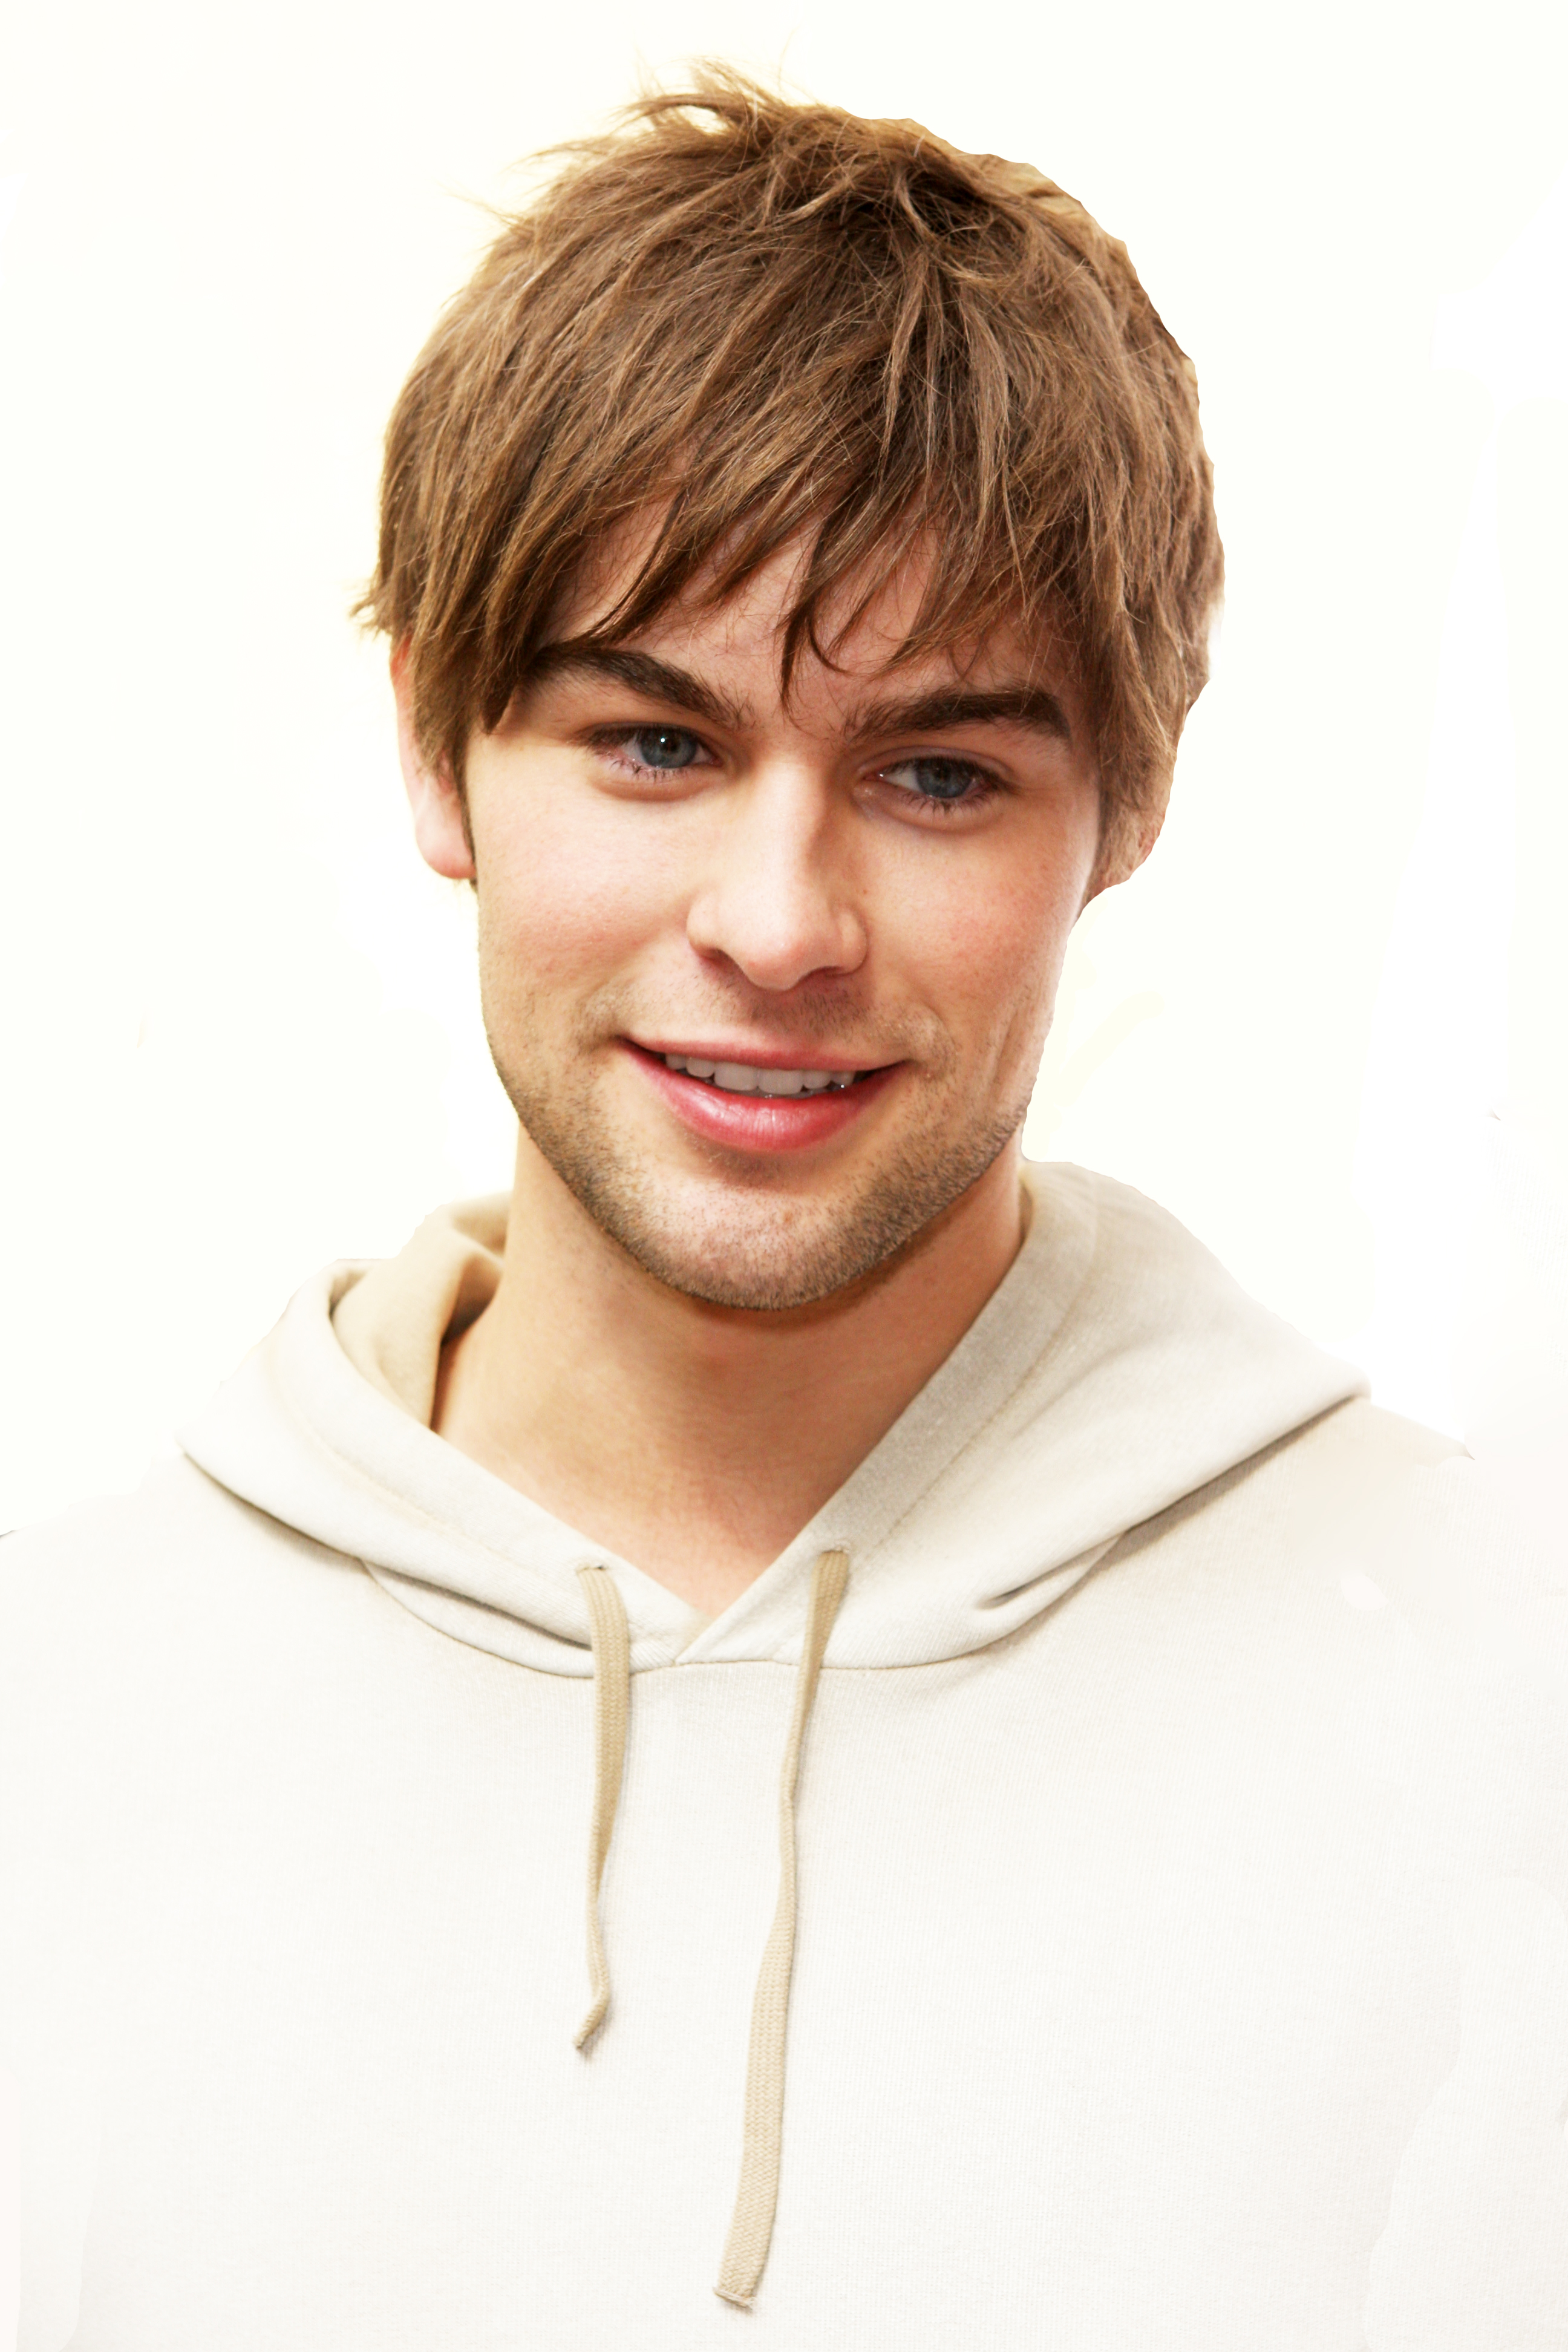 Chace Crawford Free Download Wallpaper For Mobile